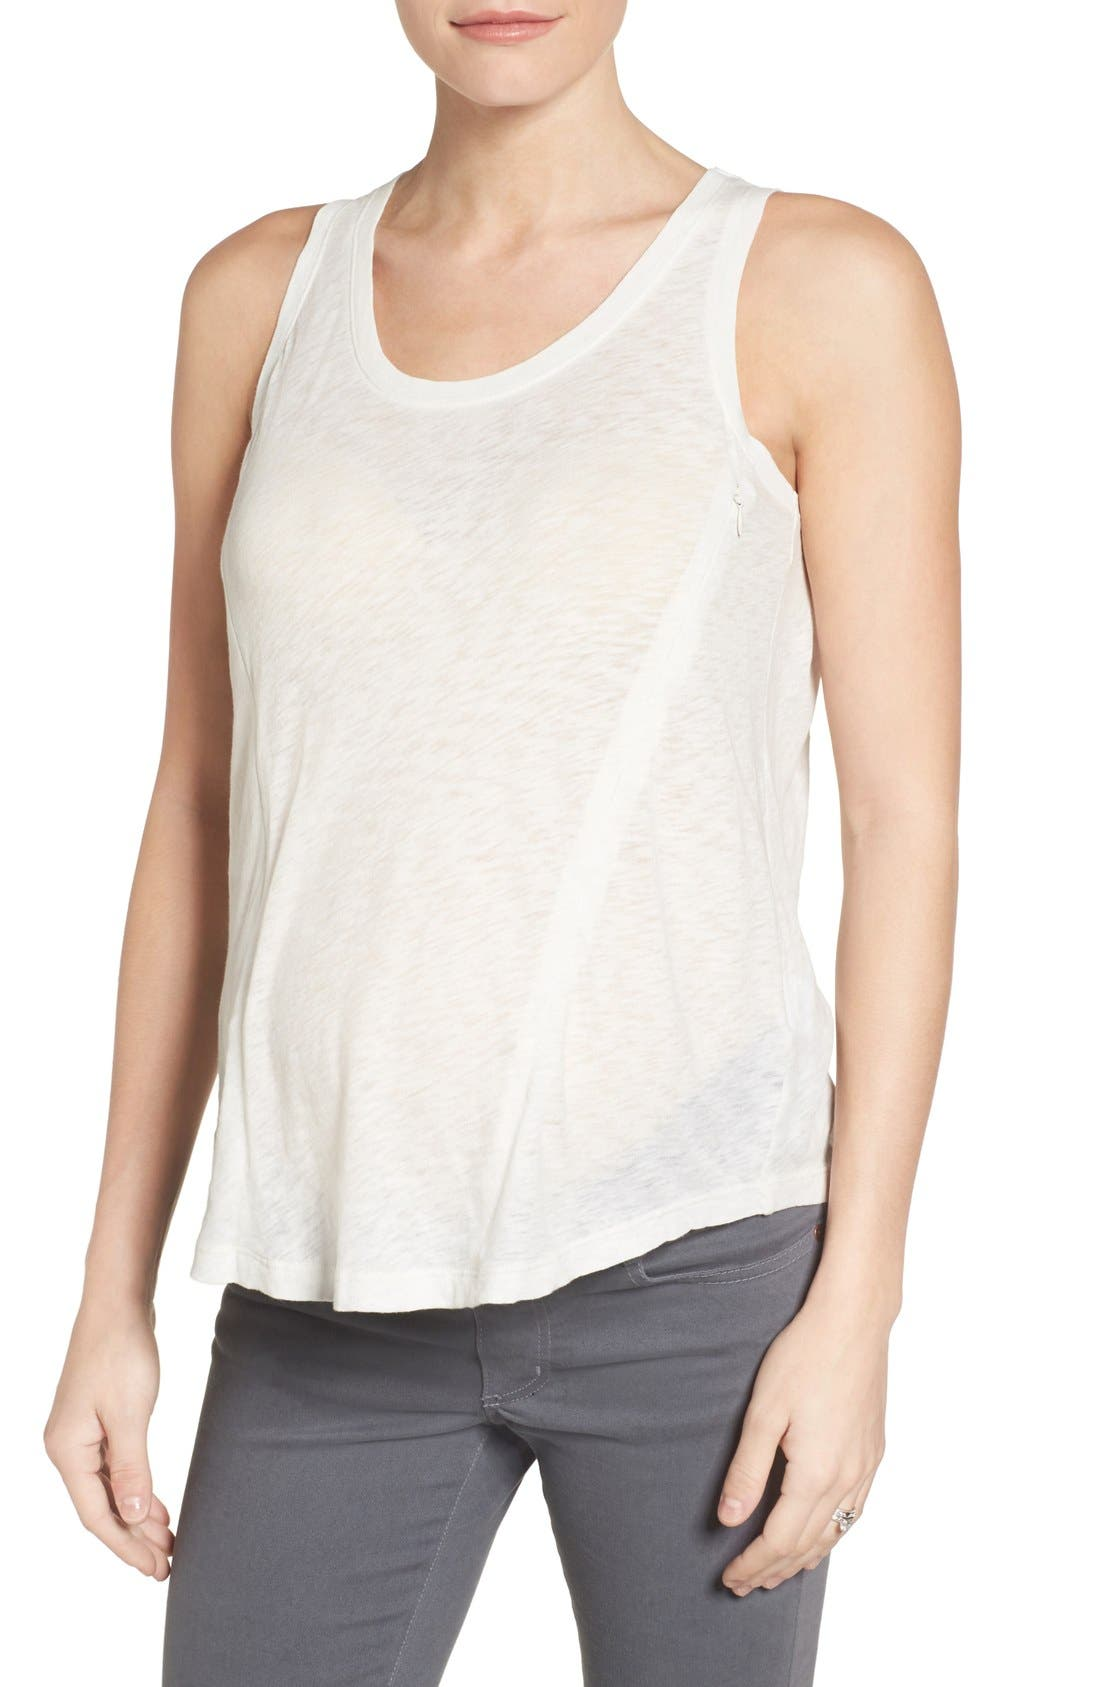 Loyal Hana Paige Maternity/Nursing Tank Top